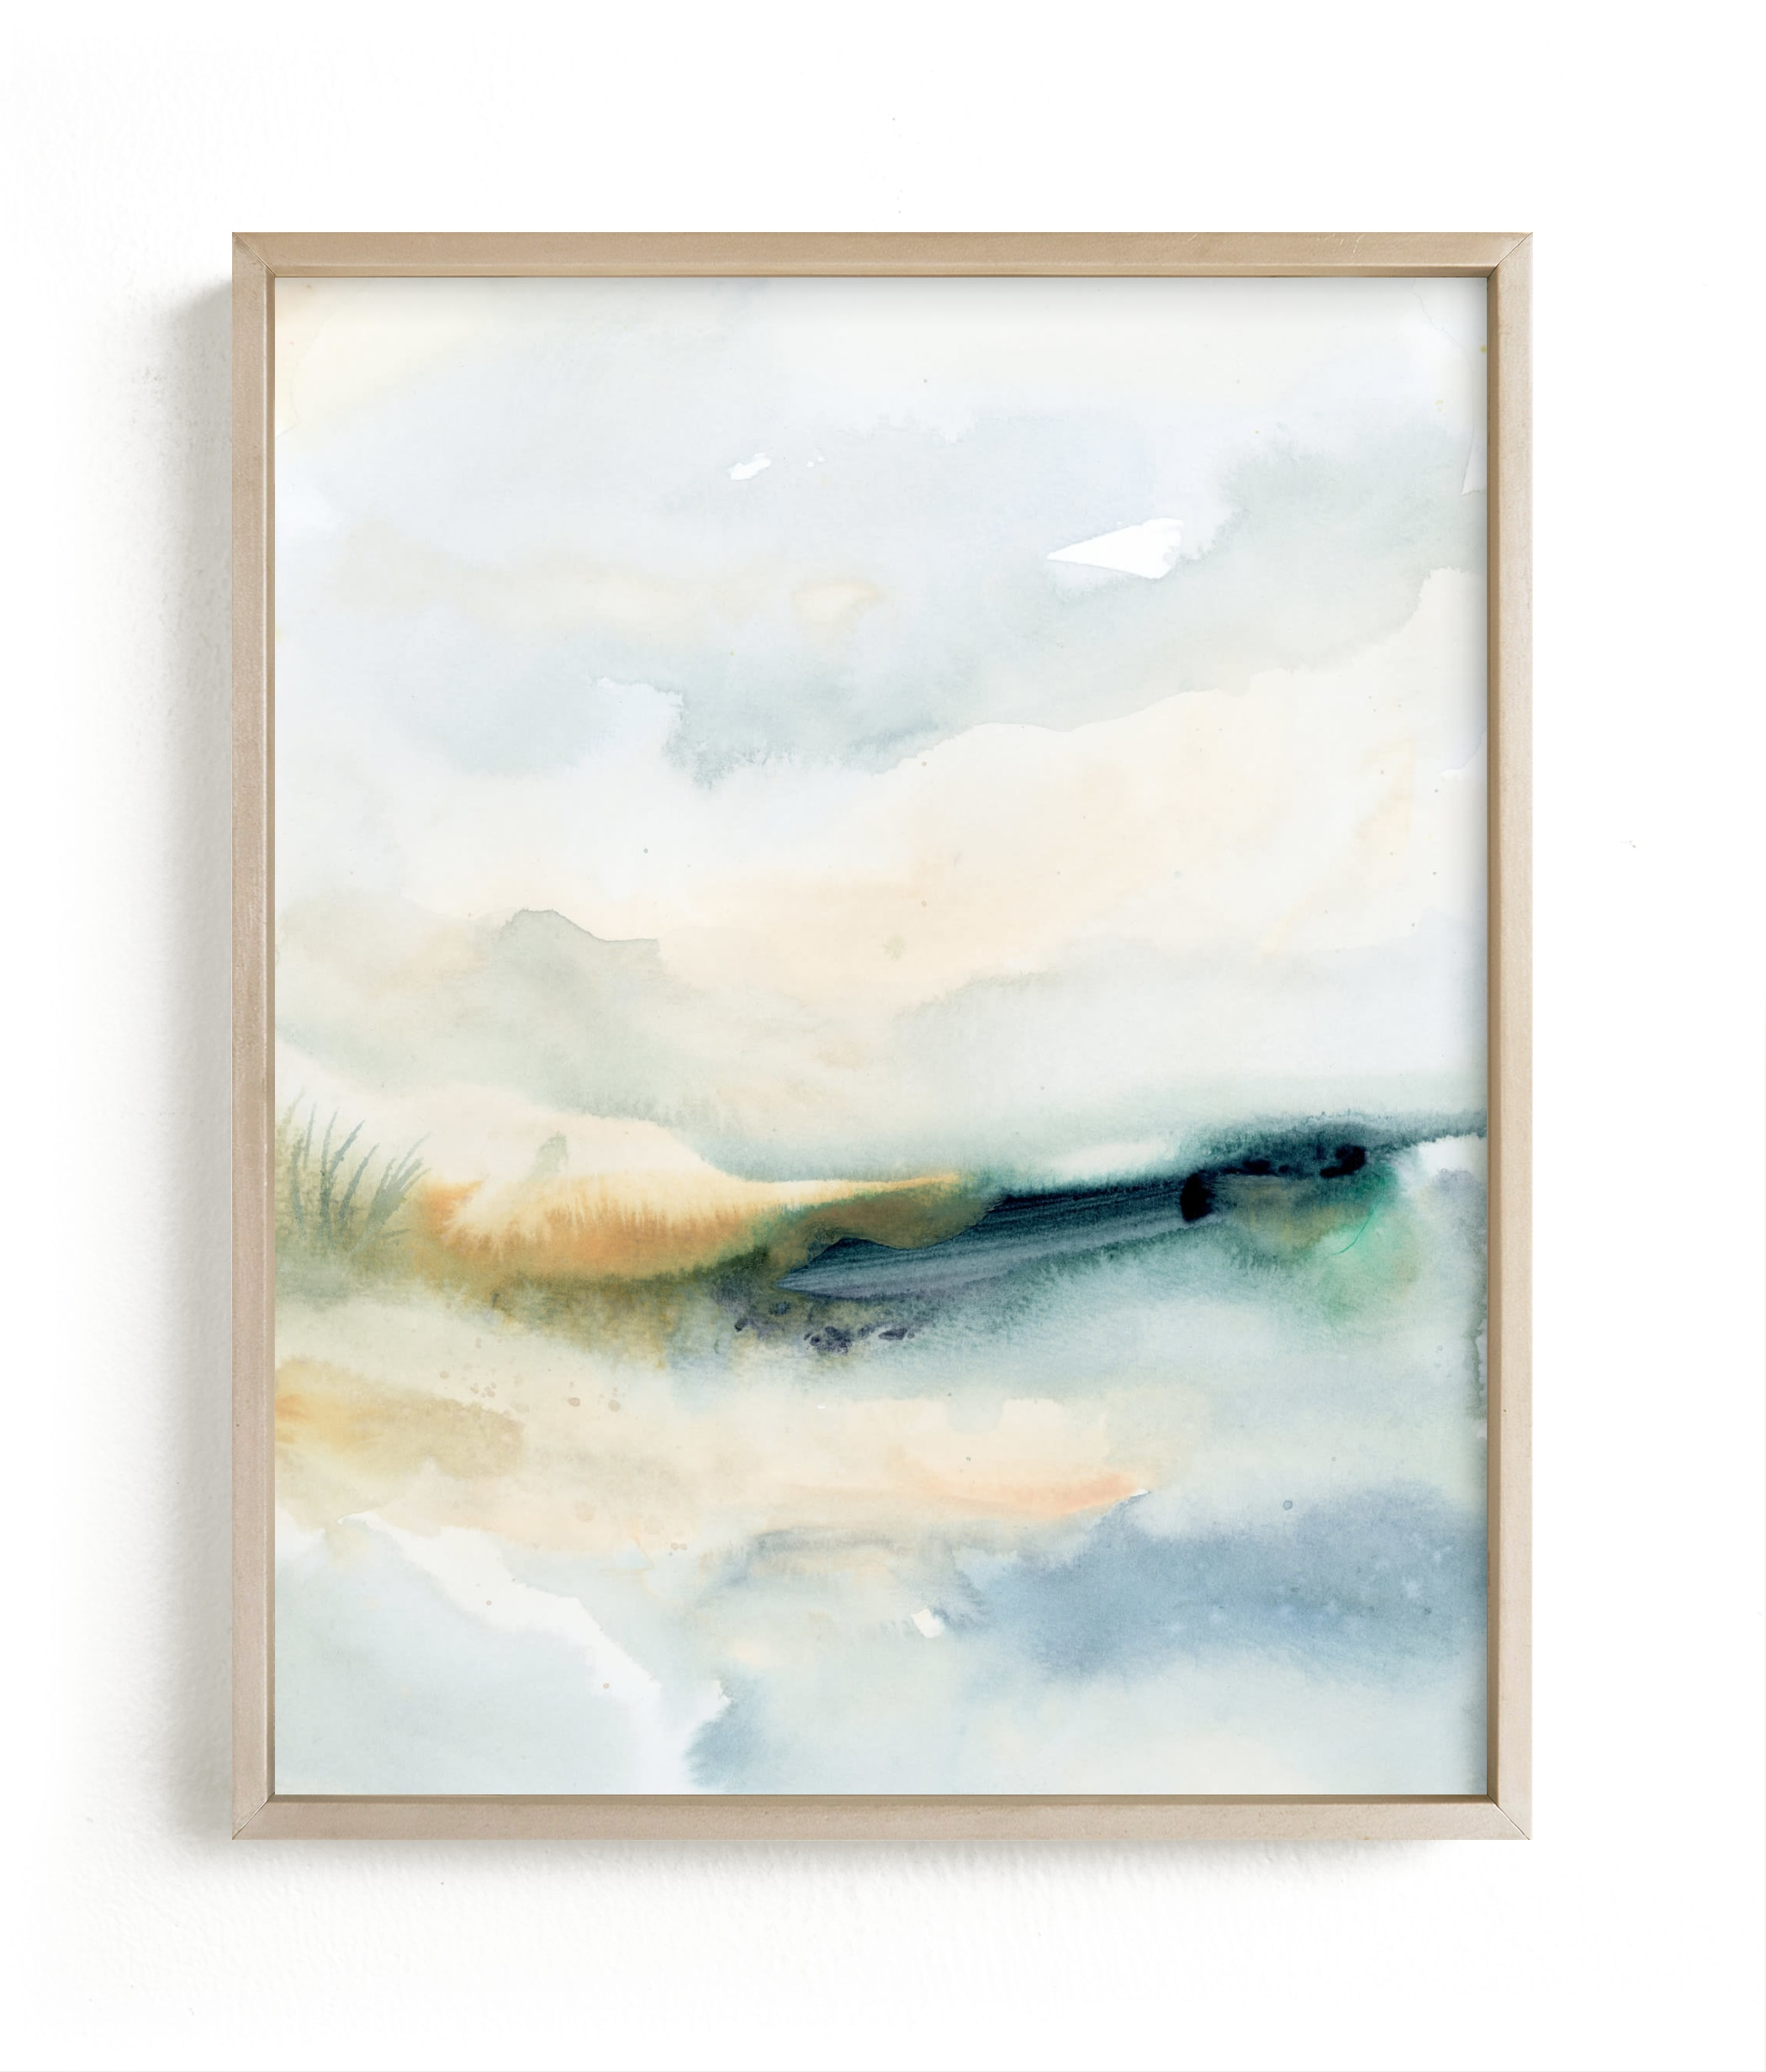 """Sea Mood II"" - Limited Edition Art Print by Lindsay Megahed in beautiful frame options and a variety of sizes."